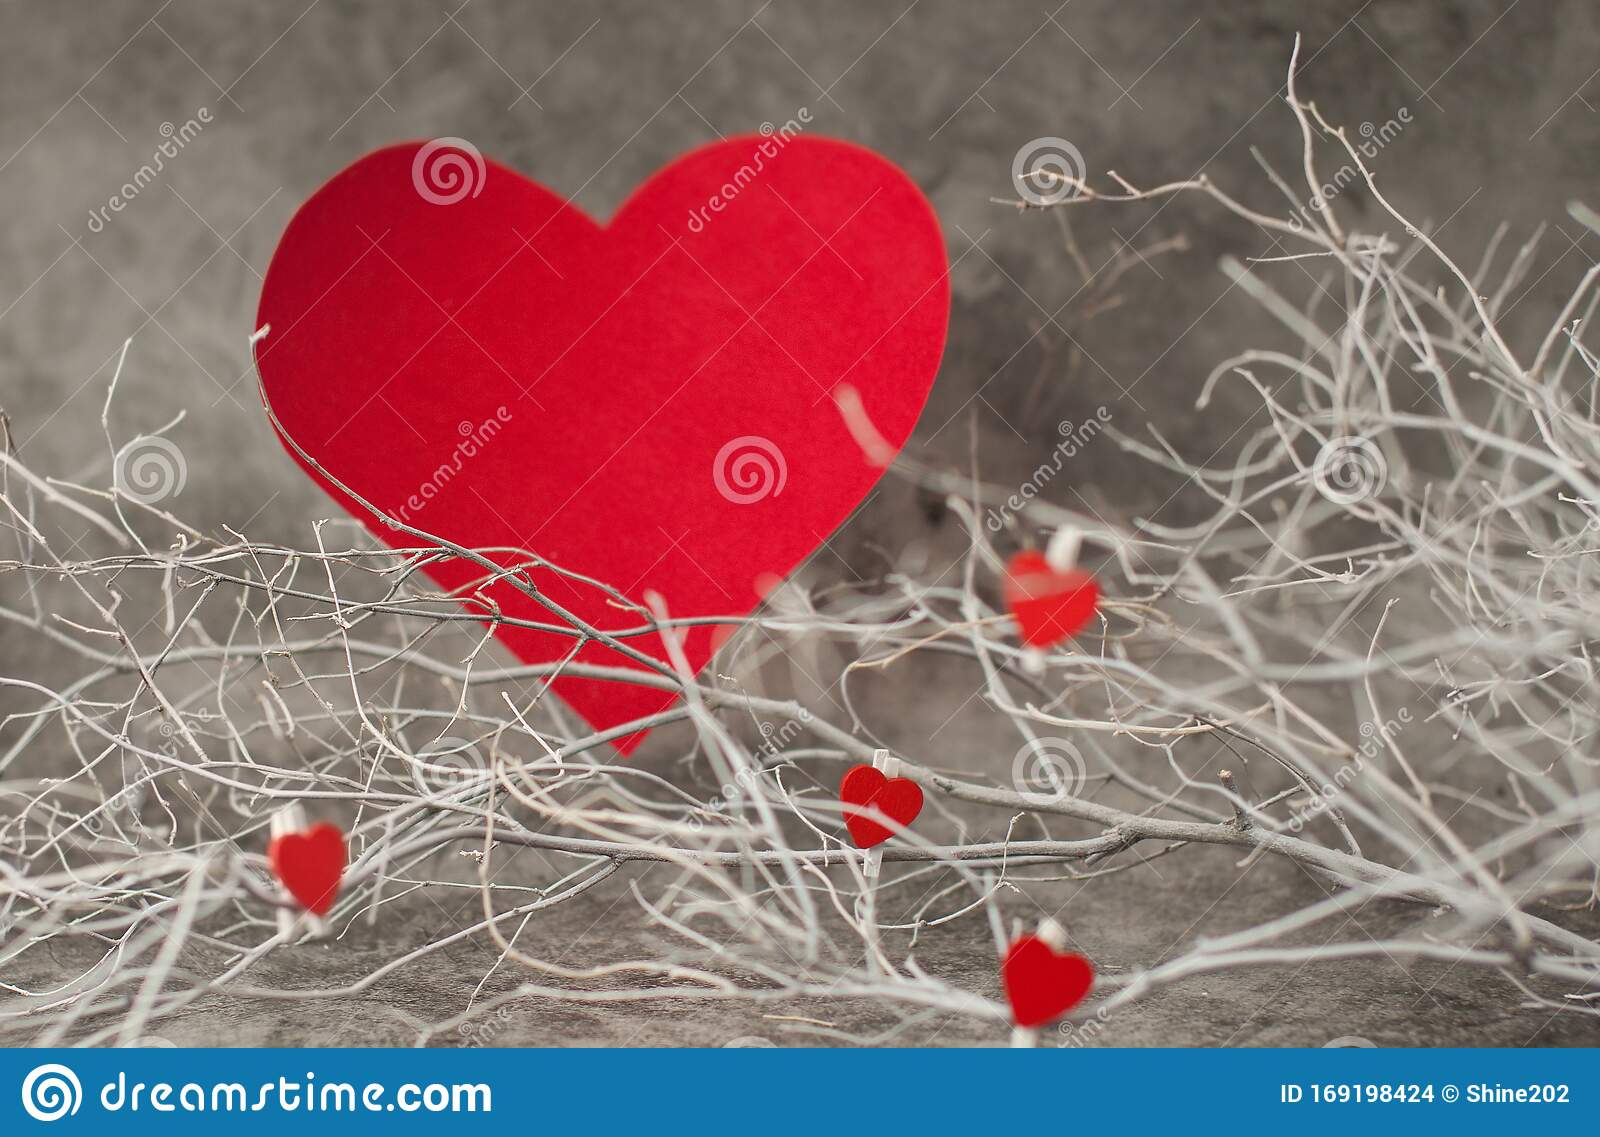 Holiday Background For Valentine S Day On A Gray Cement Background With White Painted Branches And A Sheet Of Paper For Text Stock Photo Image Of Decoration Branch 169198424